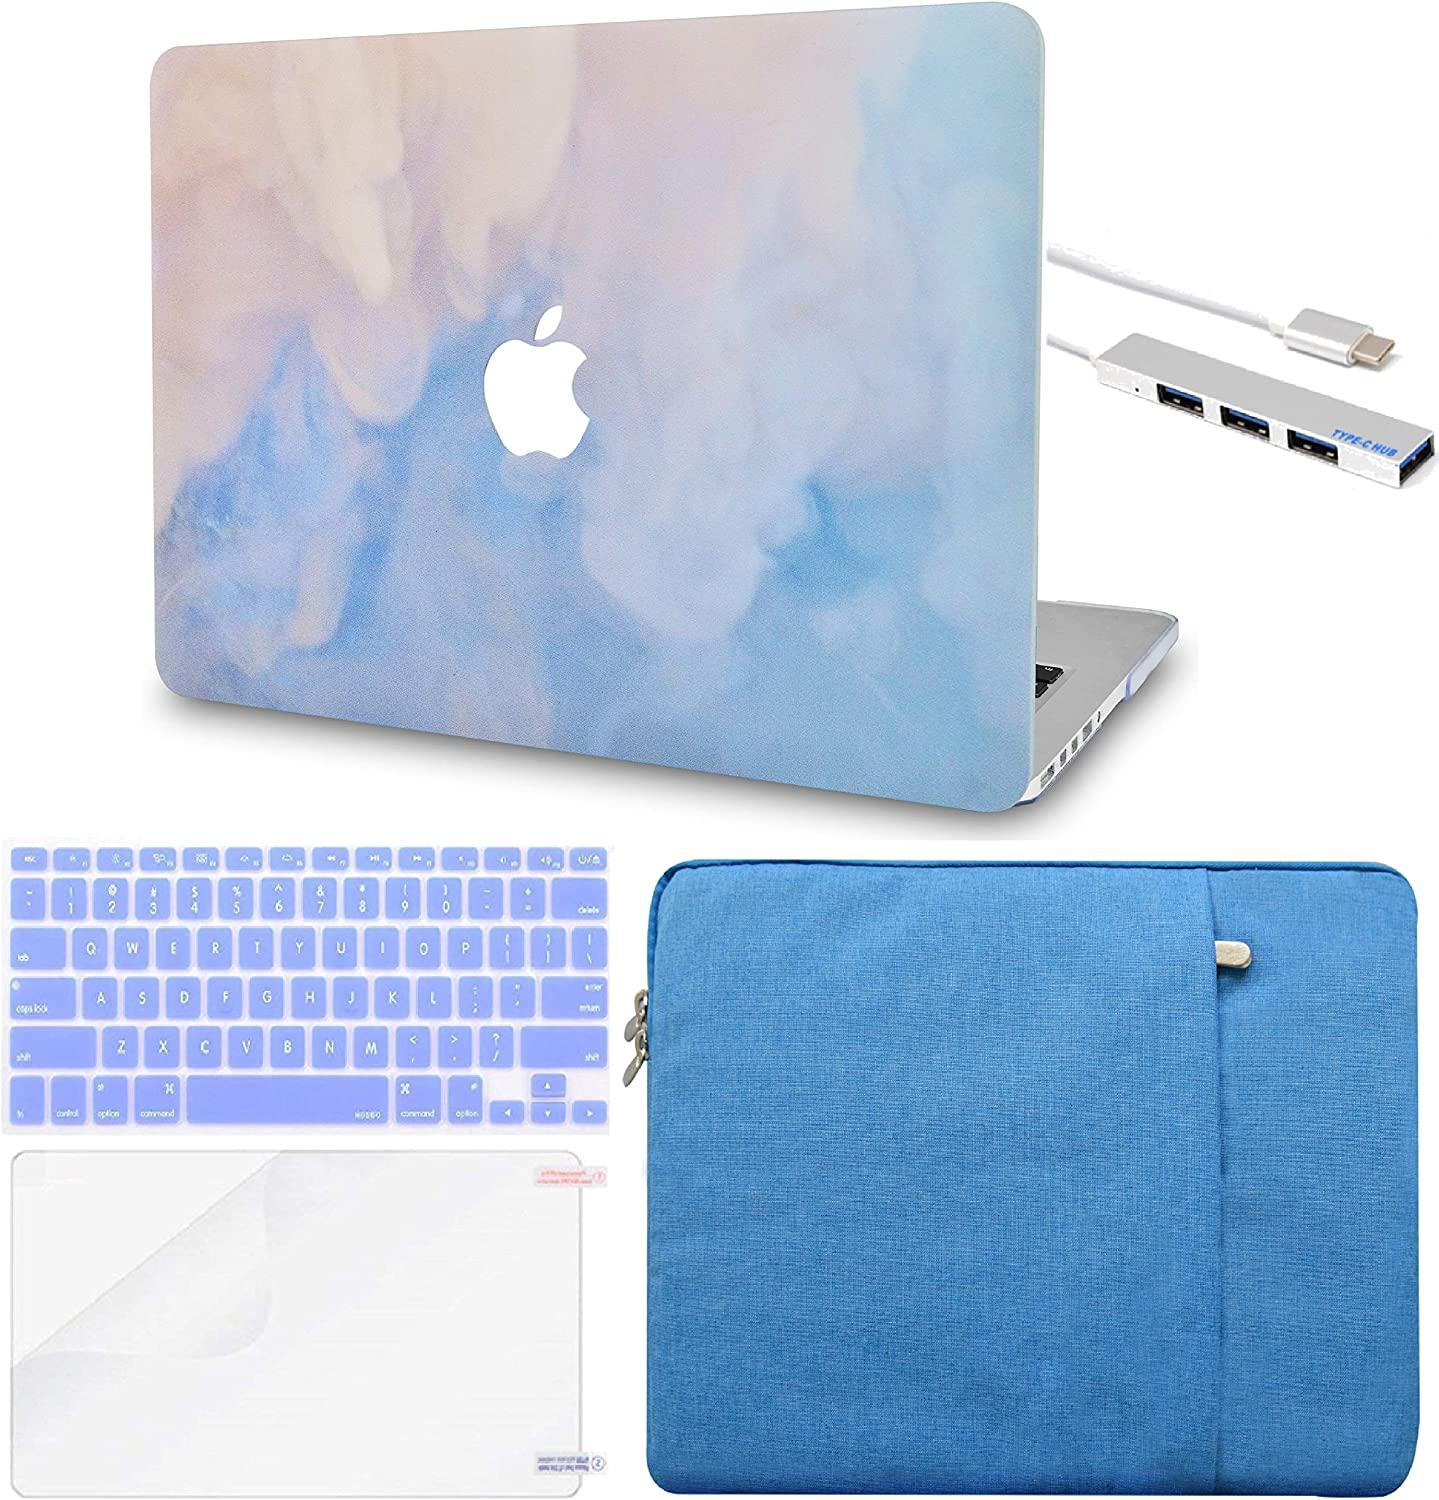 """LuvCase 5 in 1 LaptopCase forMacBookPro 13"""" (2016-2020) w/wo Touch Bar A2159/A1989/A1706/A1708 HardShellCover, Sleeve, USB Hub 3.0, Keyboard Cover & Screen Protector (Blue Mist)"""